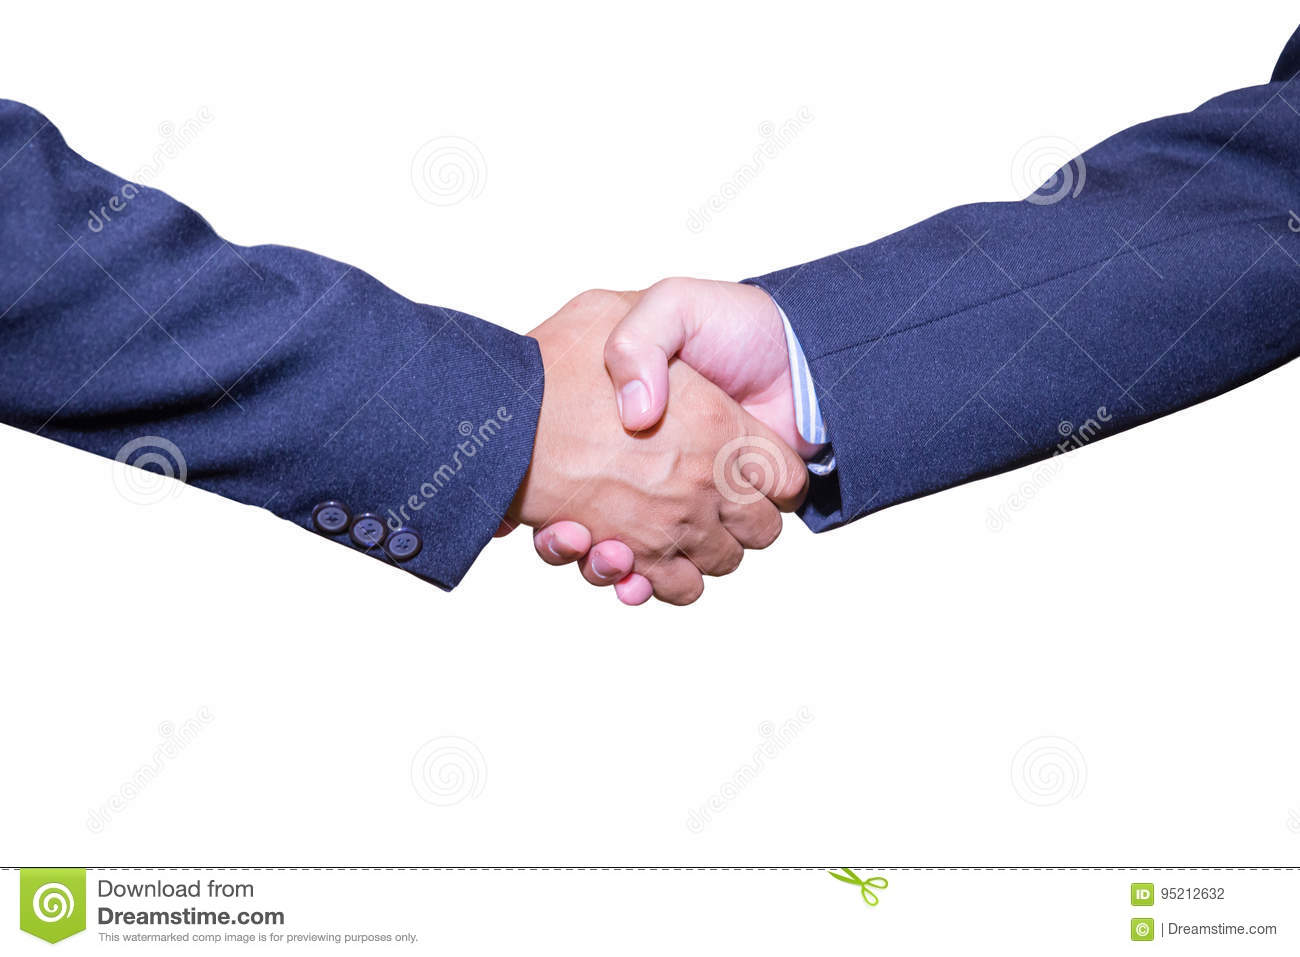 handshake and business people concepts. Two men shaking hands on white background.